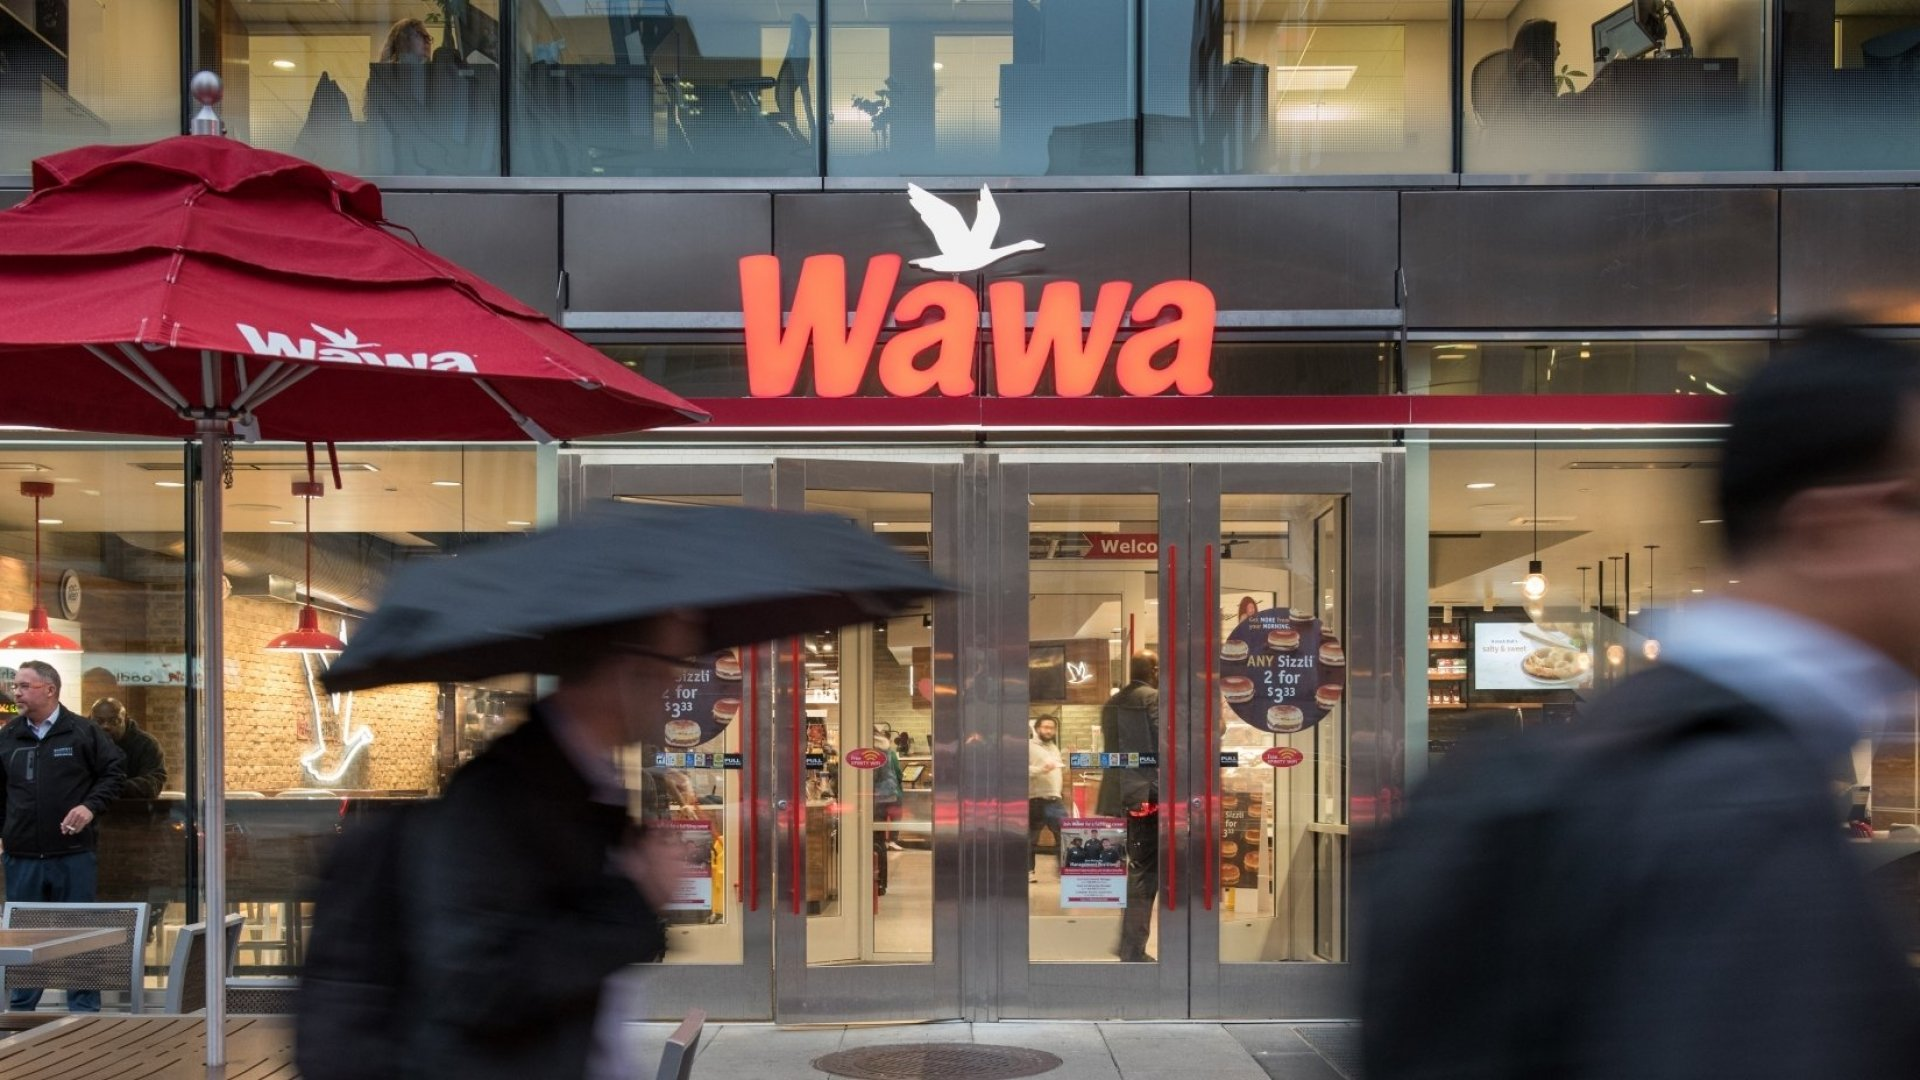 Wawa's CEO Eyes New York City, But Sees 'A Lot of Work' First